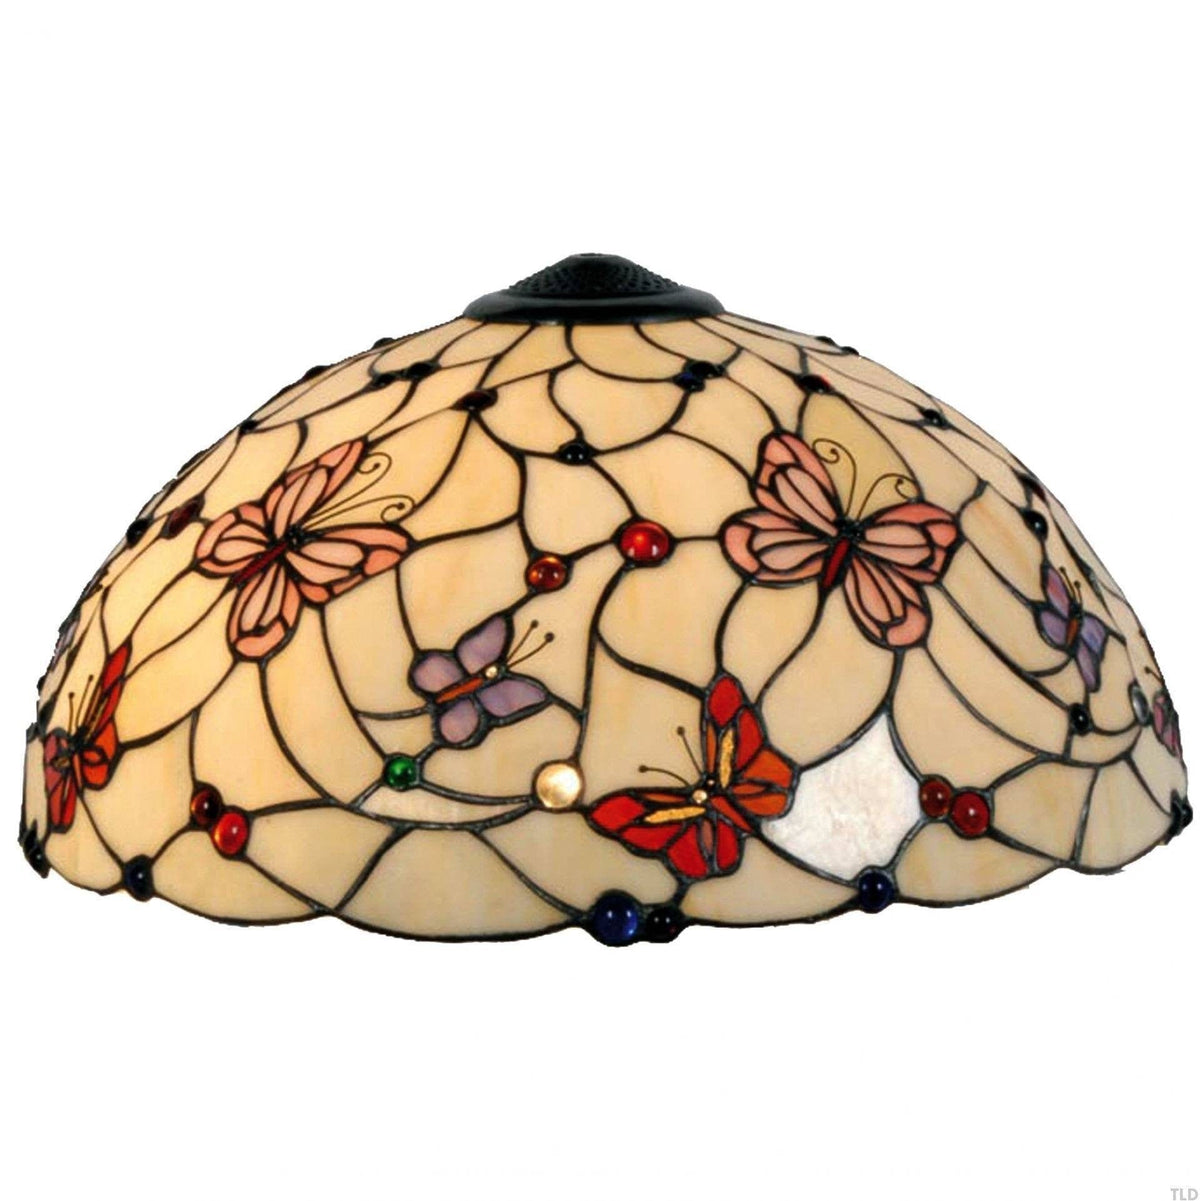 Tiffany Replacement Table Lamp Shades & Bases - London Large Tiffany Replacement Table Lamp Shade